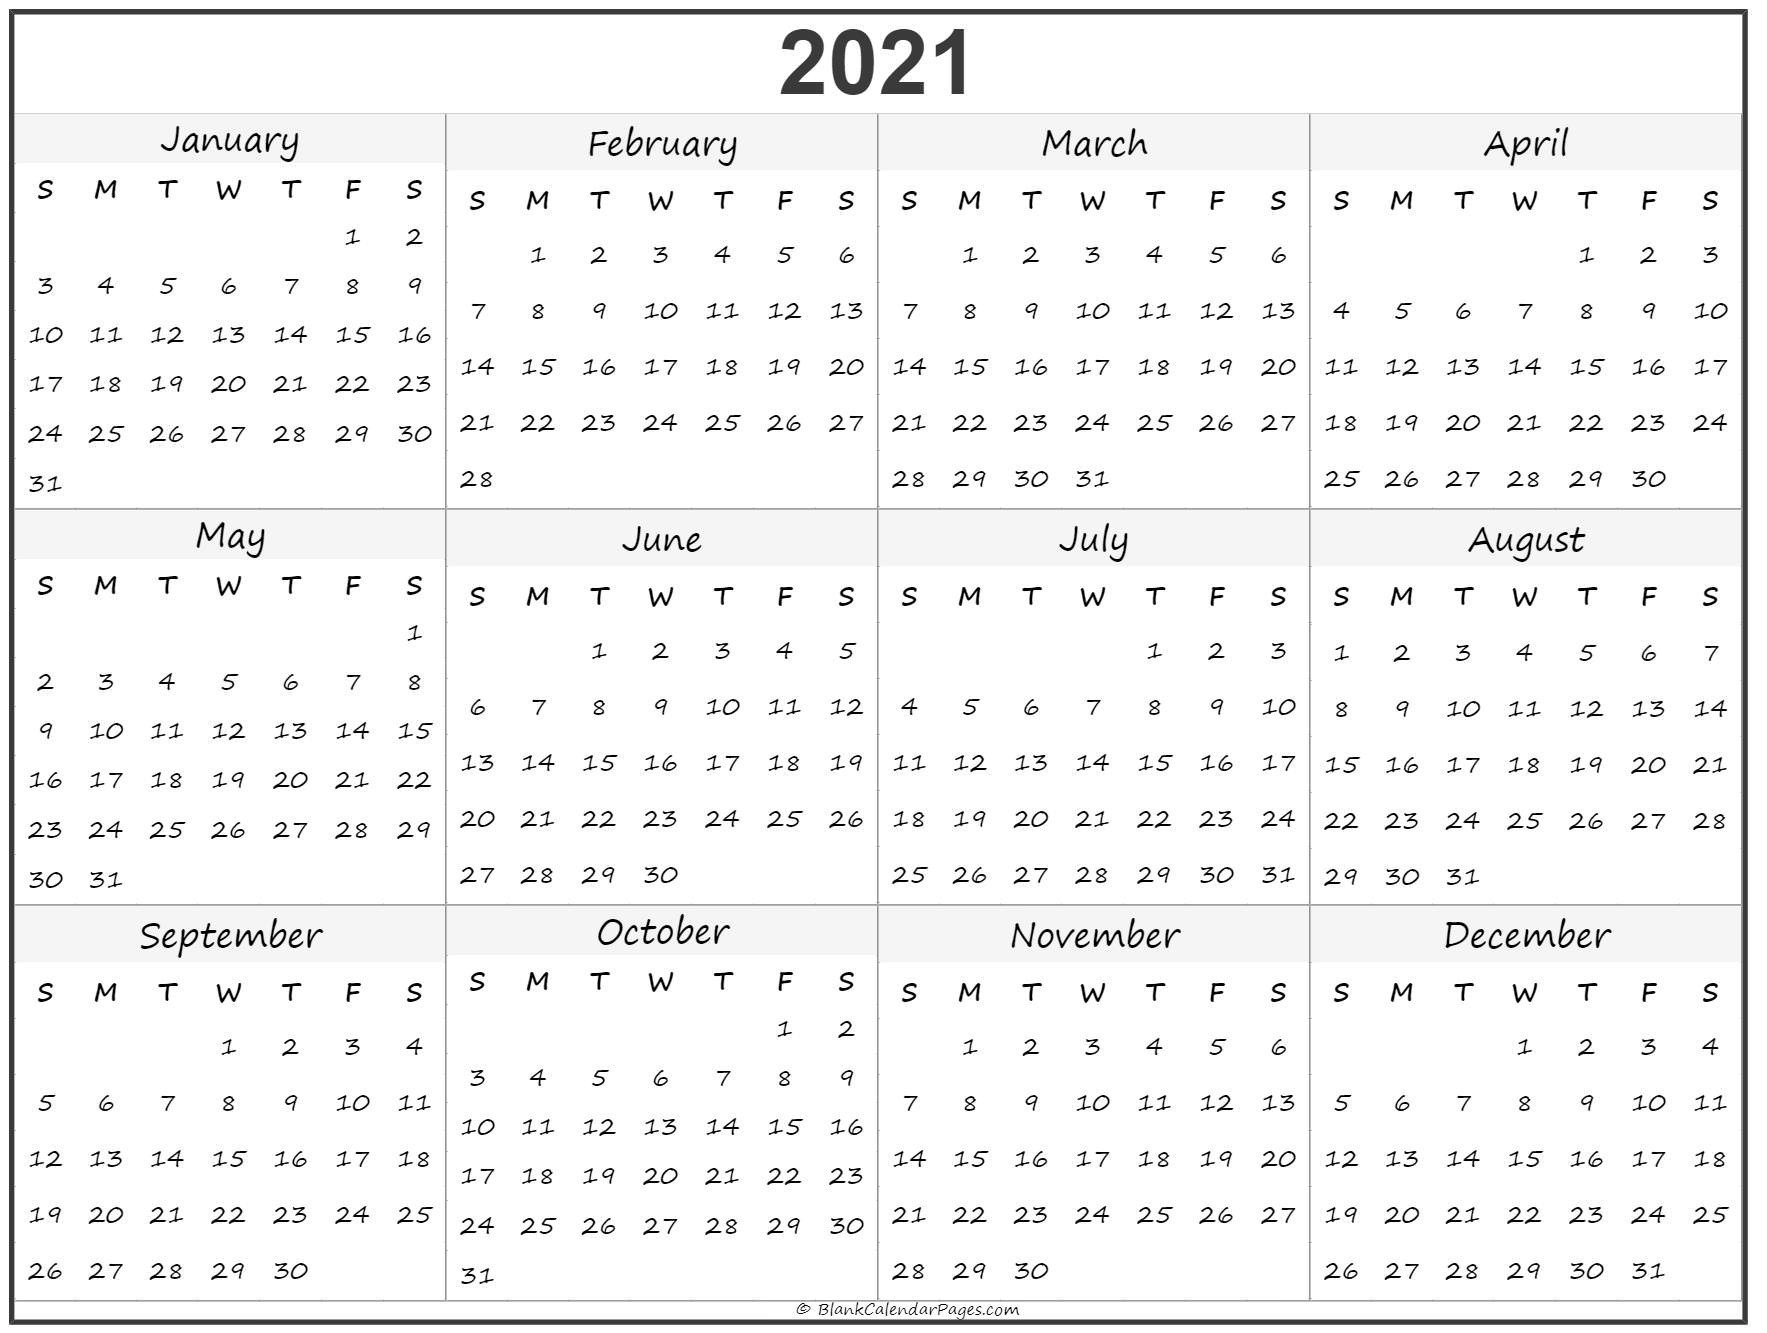 2021 Calendar Printable One Page | Free Printable Calendar Monthly throughout Free Printable Yearly Calendars 2021 Portrait Graphics